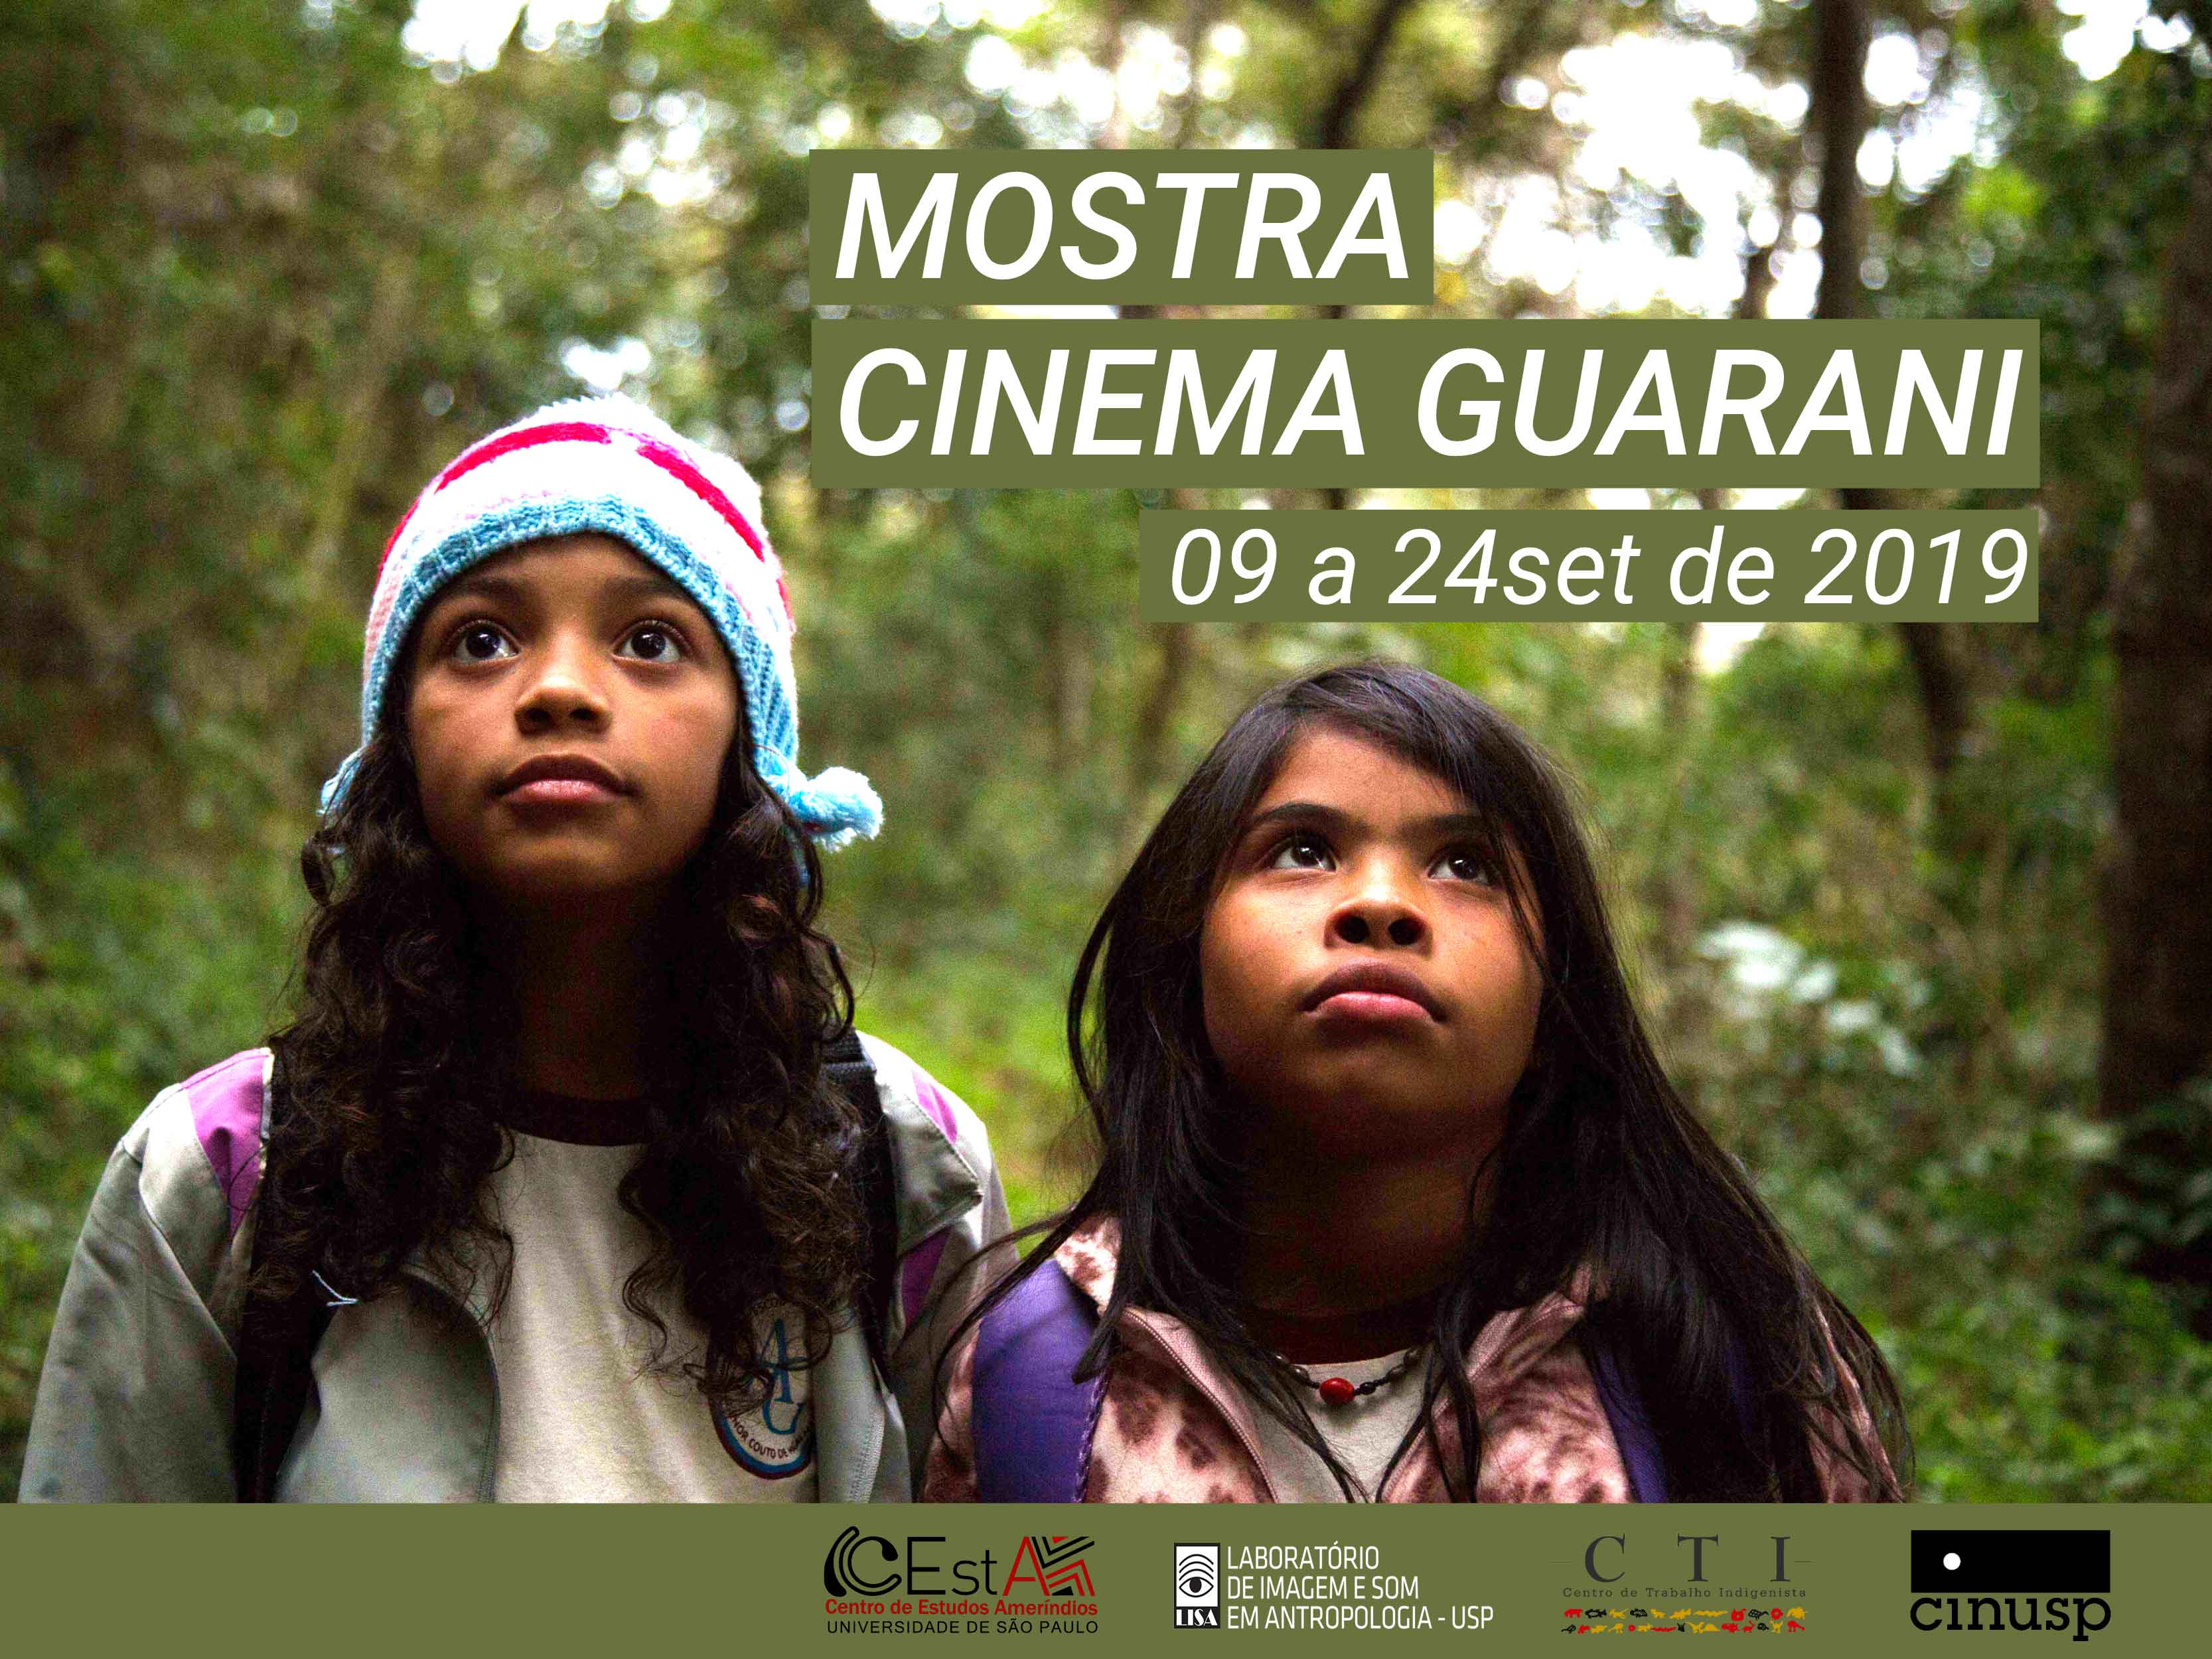 Mostra Cinema Guarani no Cinusp